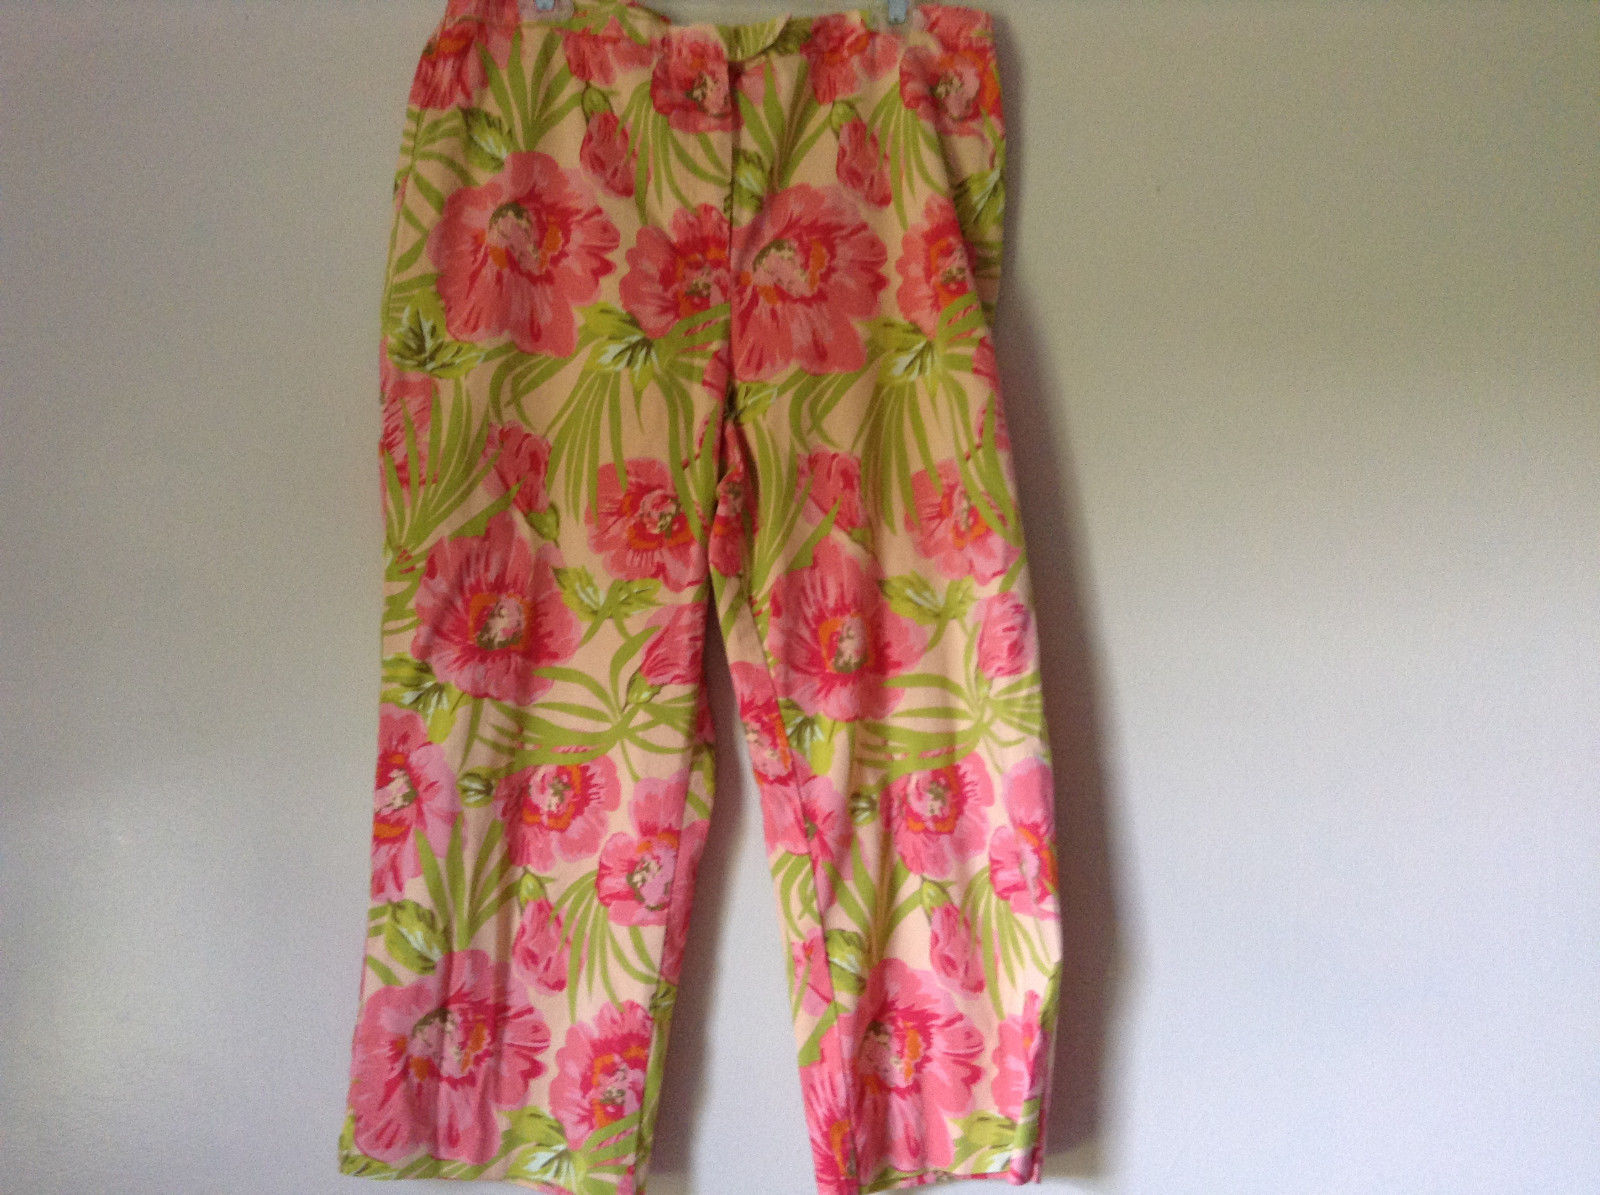 Bright Tropical Casual Pants Valerie Stevens Pink Green Flowers Capris Size 18W